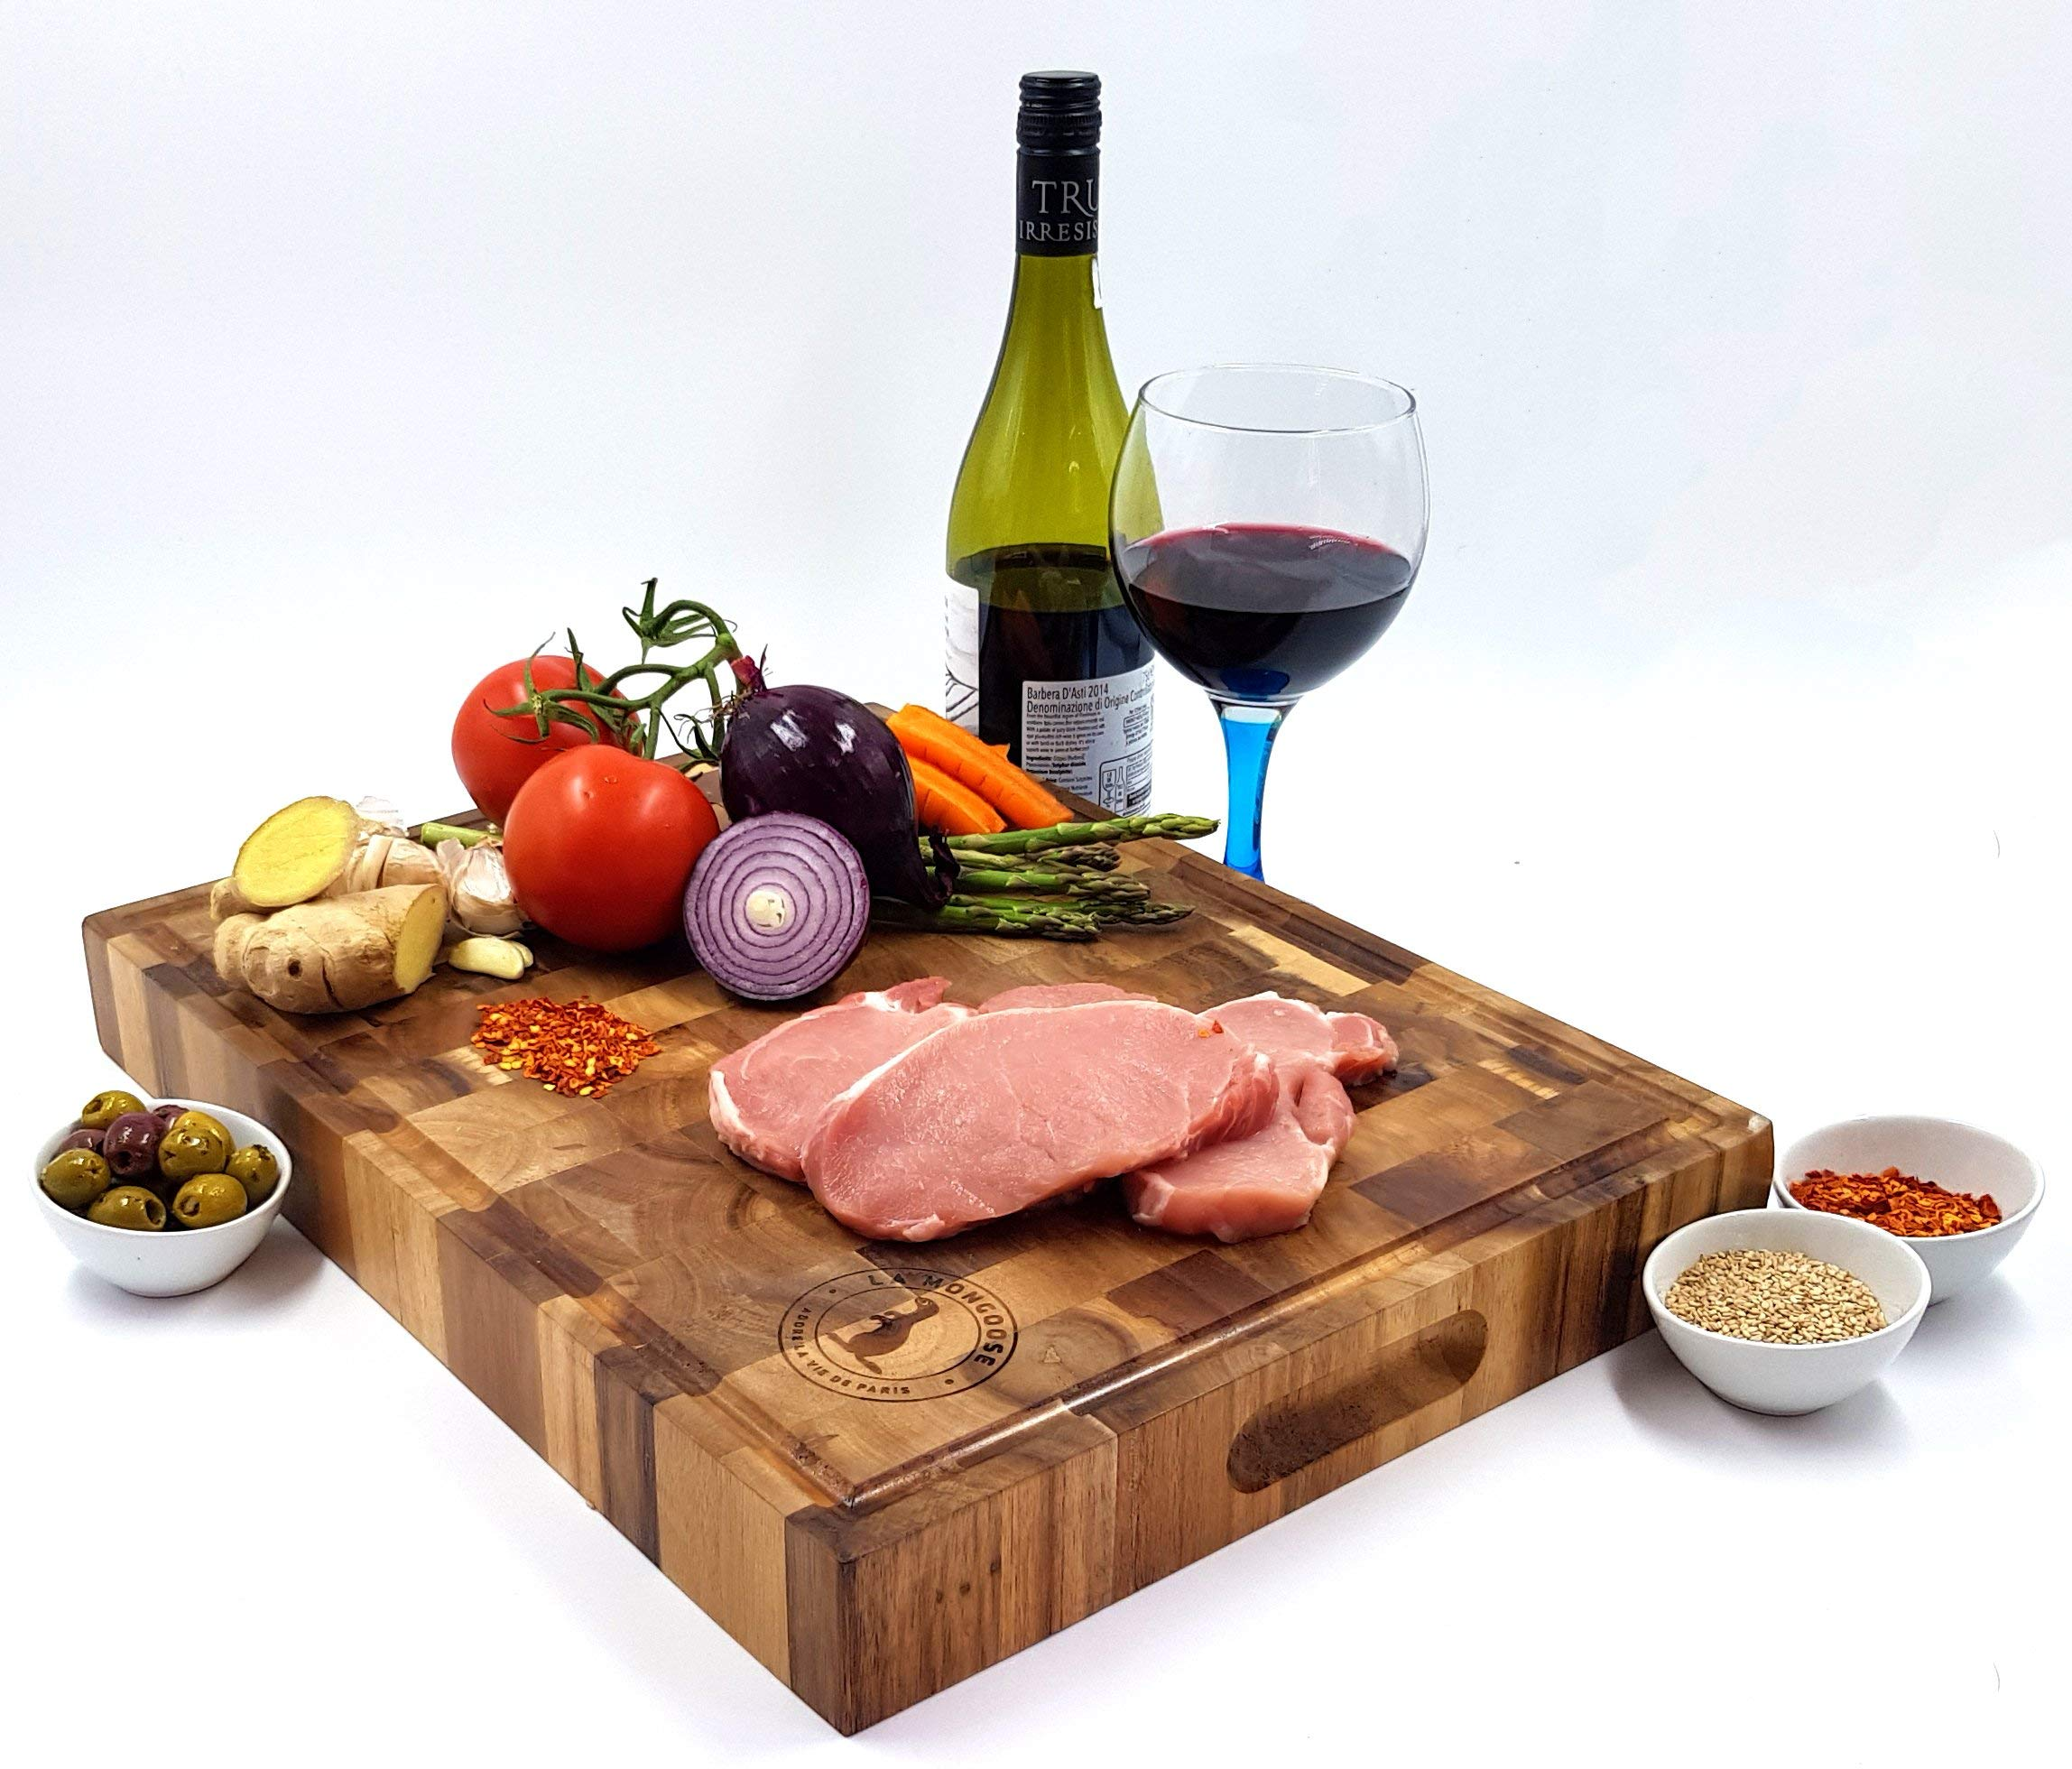 Extra Large Thick Acacia Wood Cutting Board 17 x 13 x 2 inches by La Mongoose. Juice Groove and Hand Grips Reversible Anti Microbial Solid Sturdy End Grain Butchers Block Chopping Serving Tray Platter by La Mongoose (Image #4)